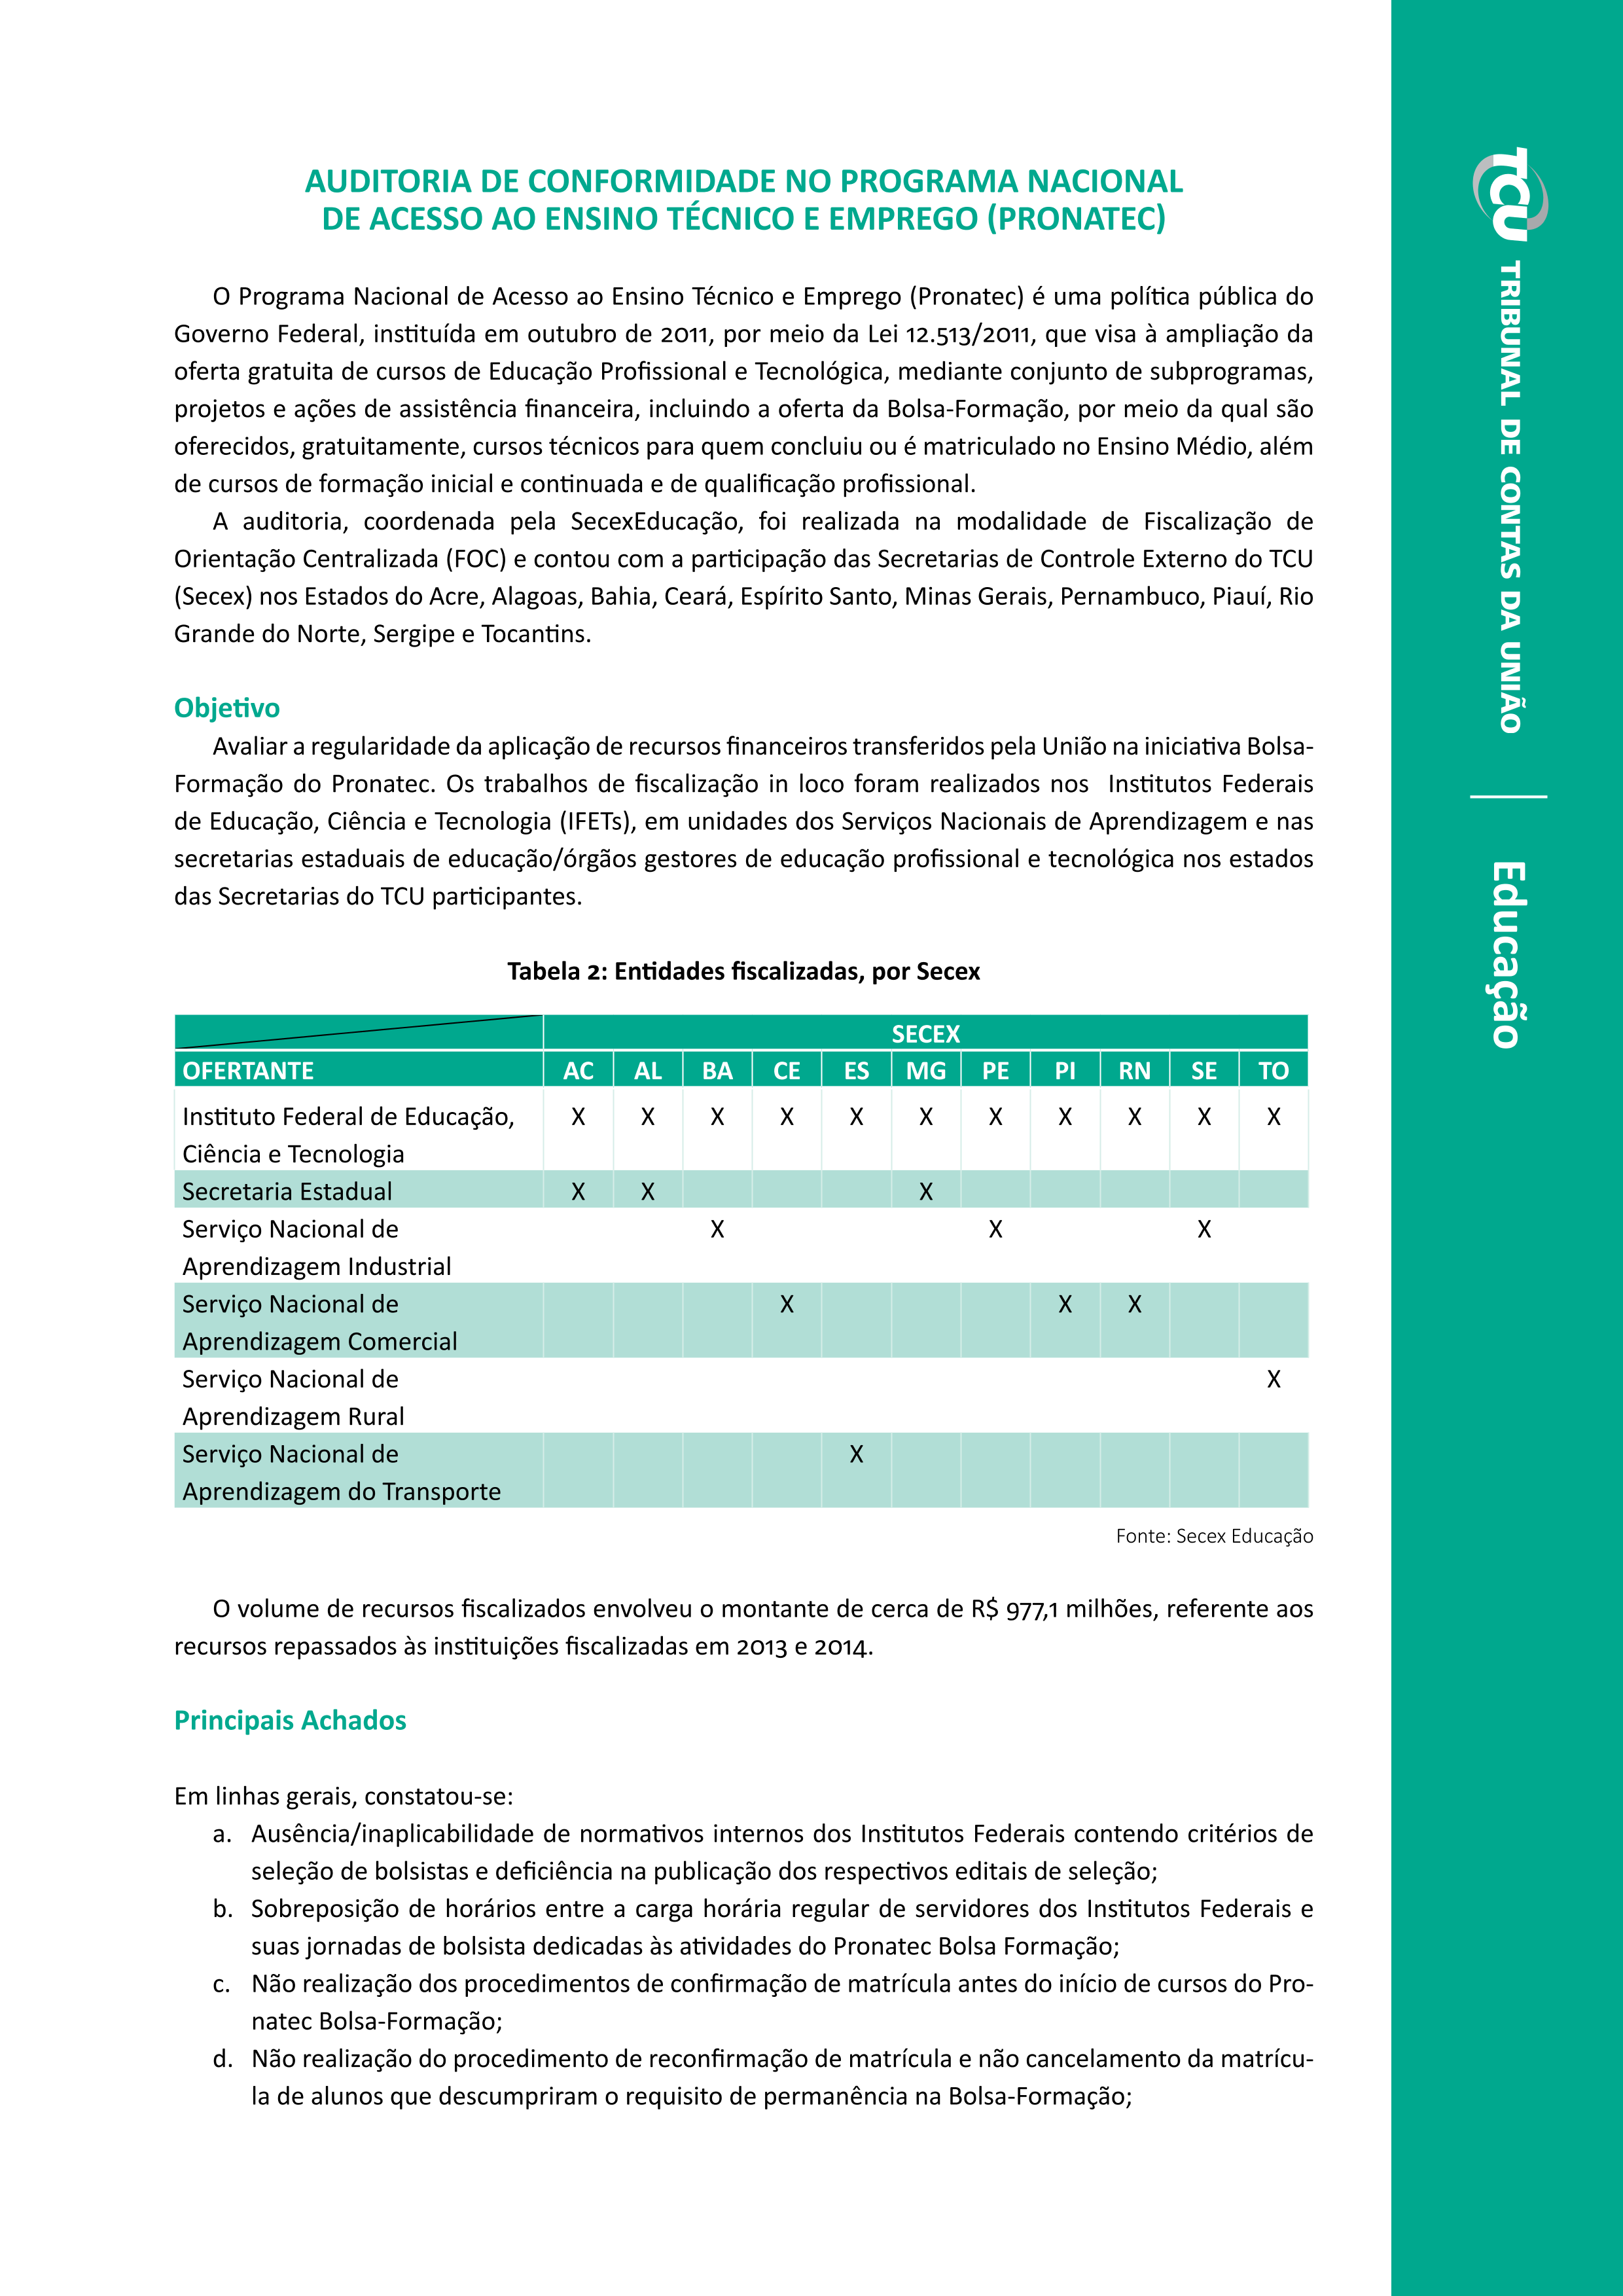 auditoria de conformidade  (pronatec) web.png